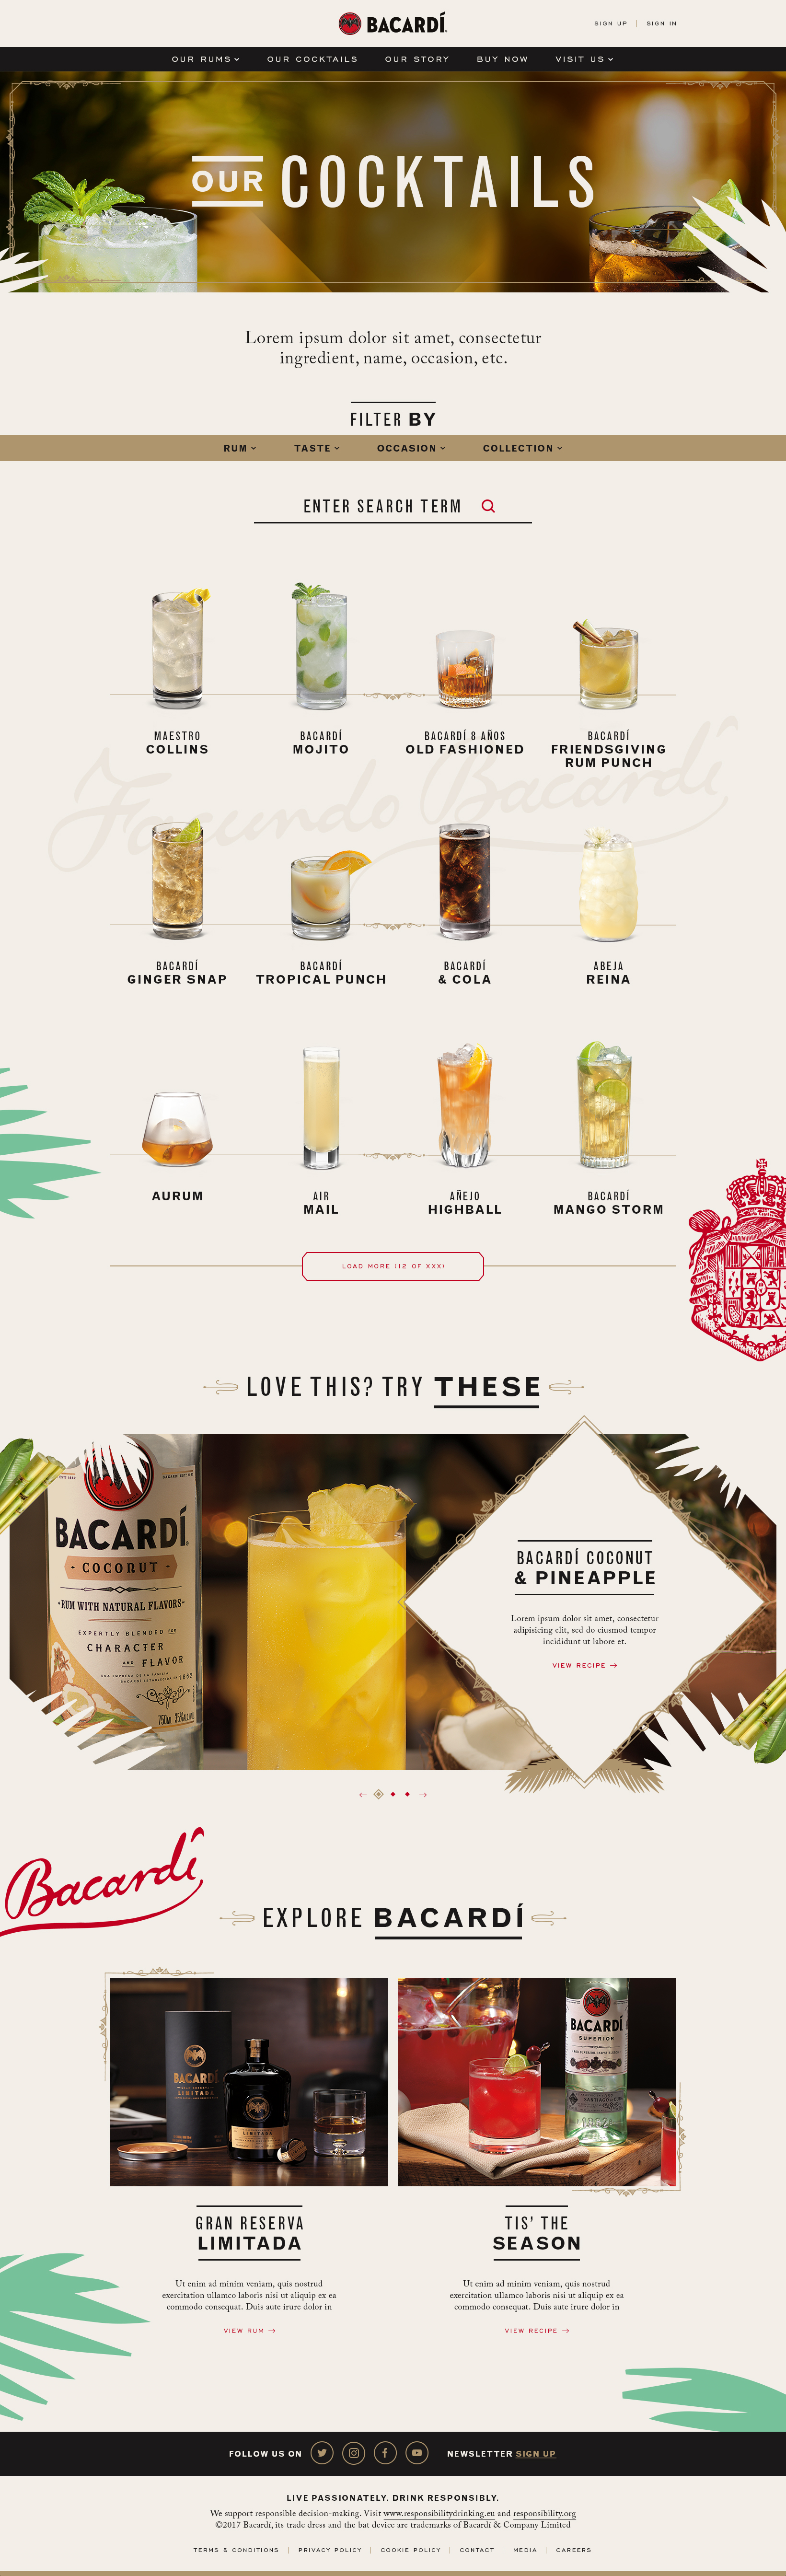 bacardi-cocktail-overview